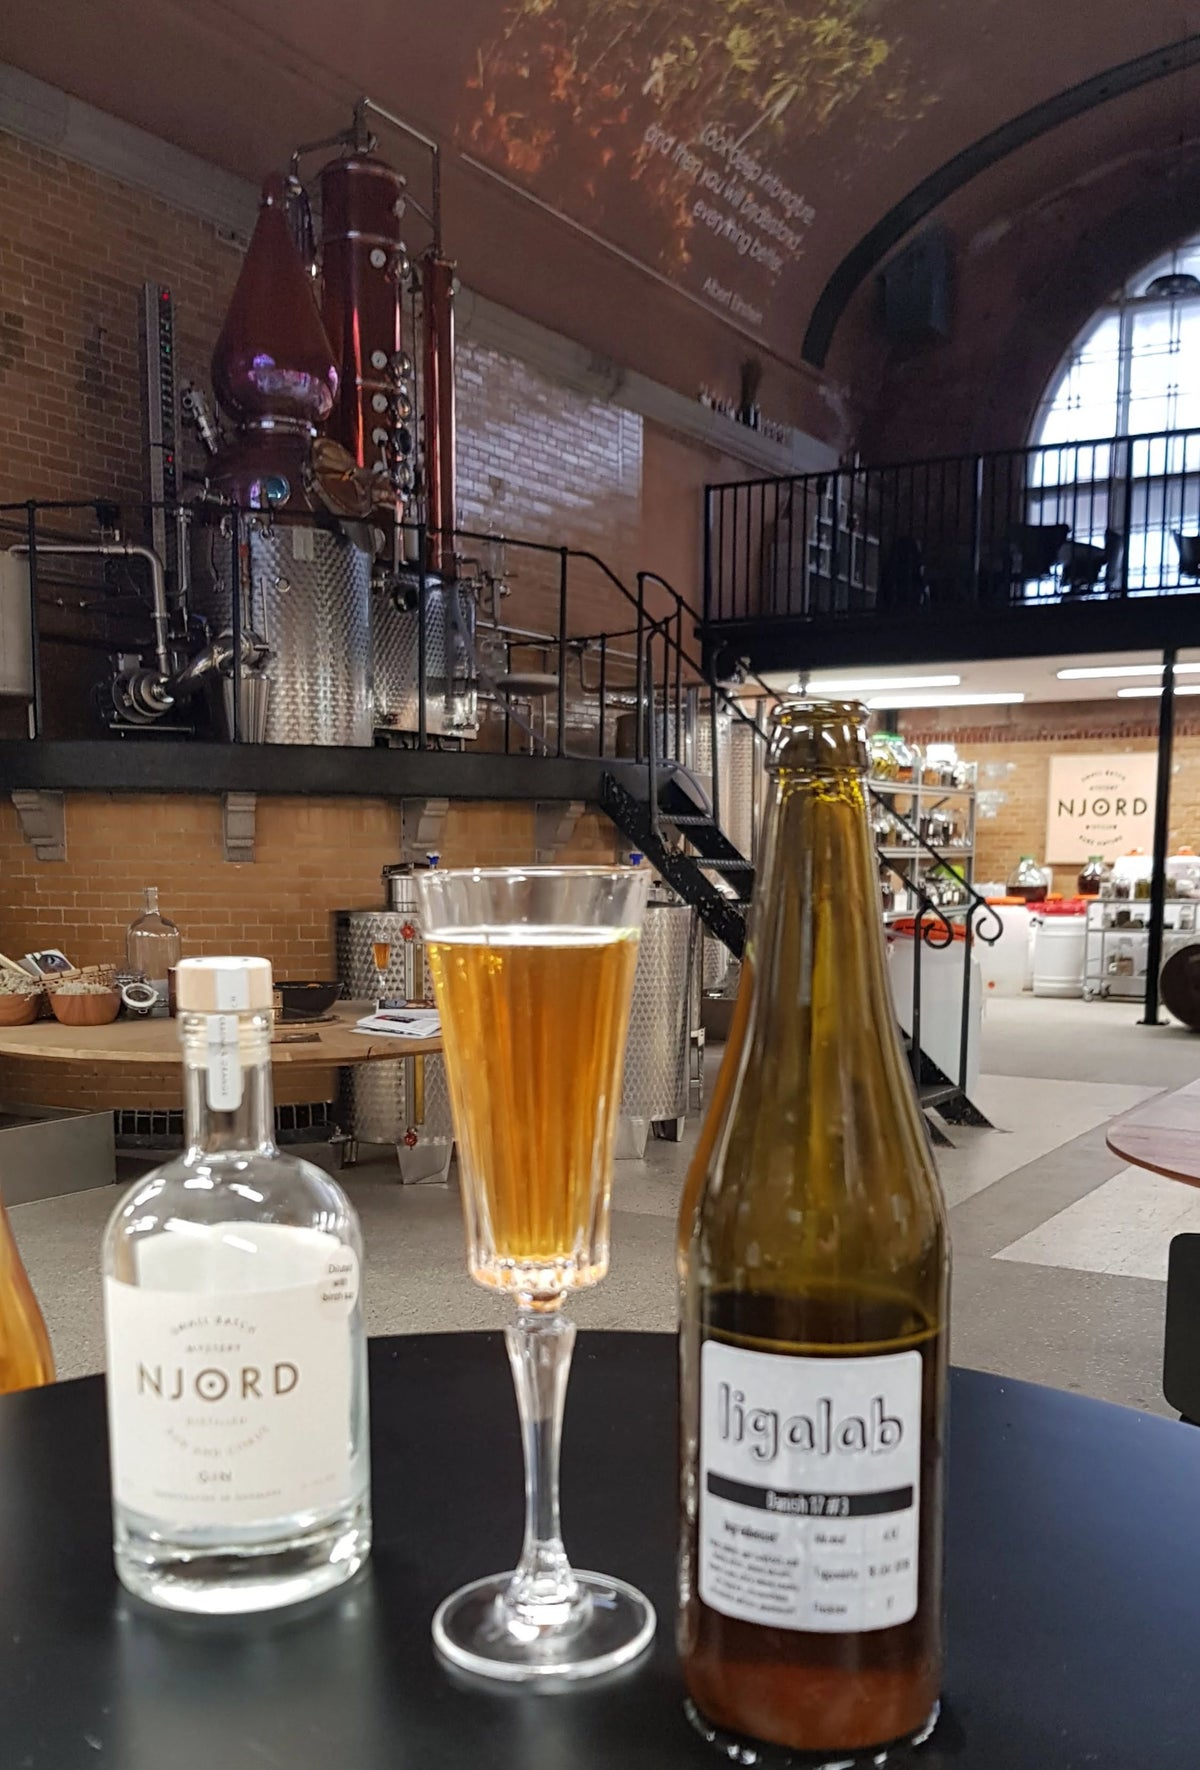 Njord LigaLab Tasting (special lab editions) - Saturday 14 August 2021